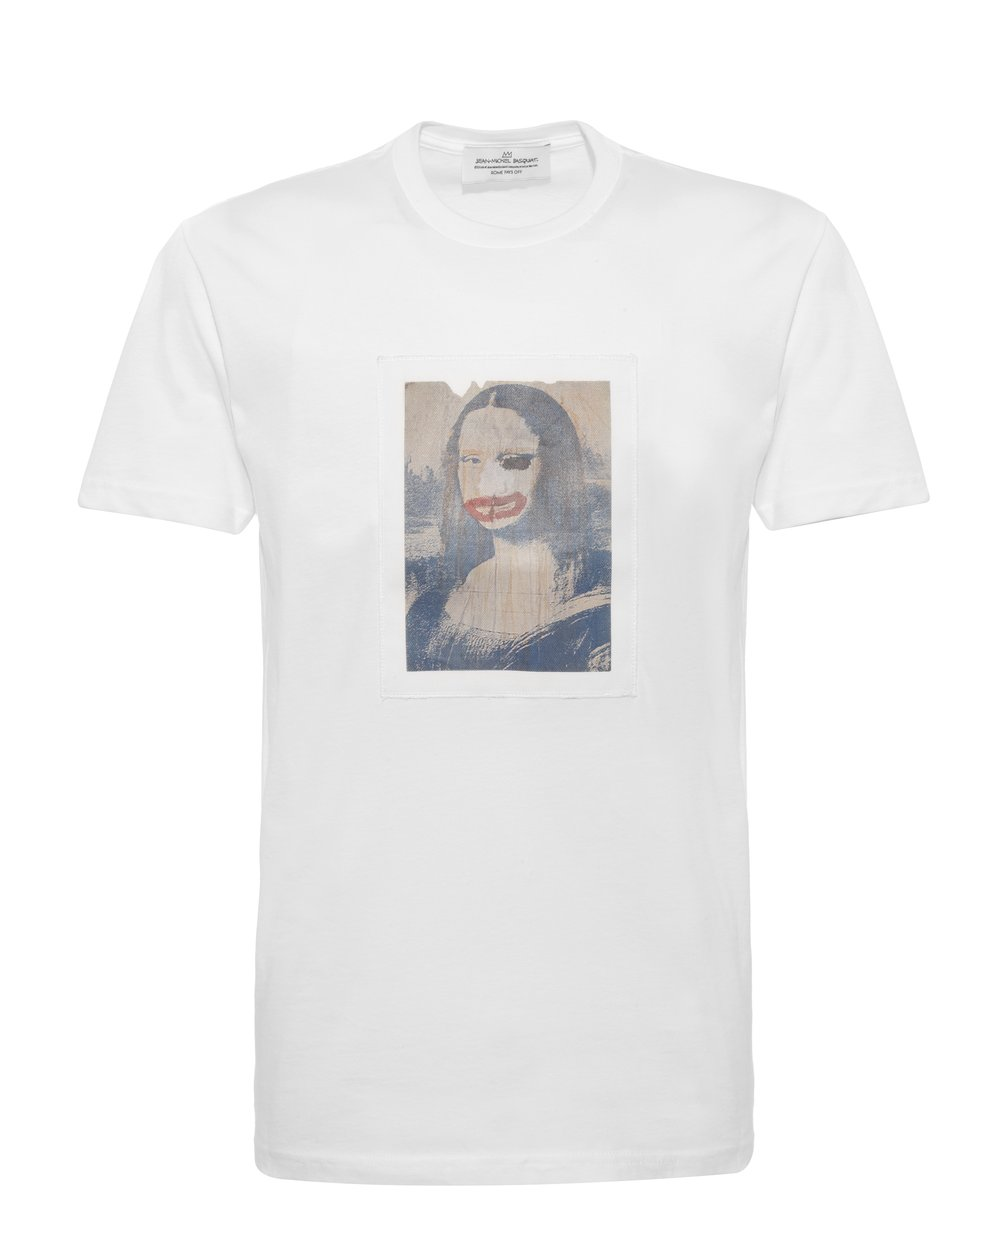 BASQUAIT - MONA LISA TEE - WHITE - £205 - BROWNS FASHION.jpg